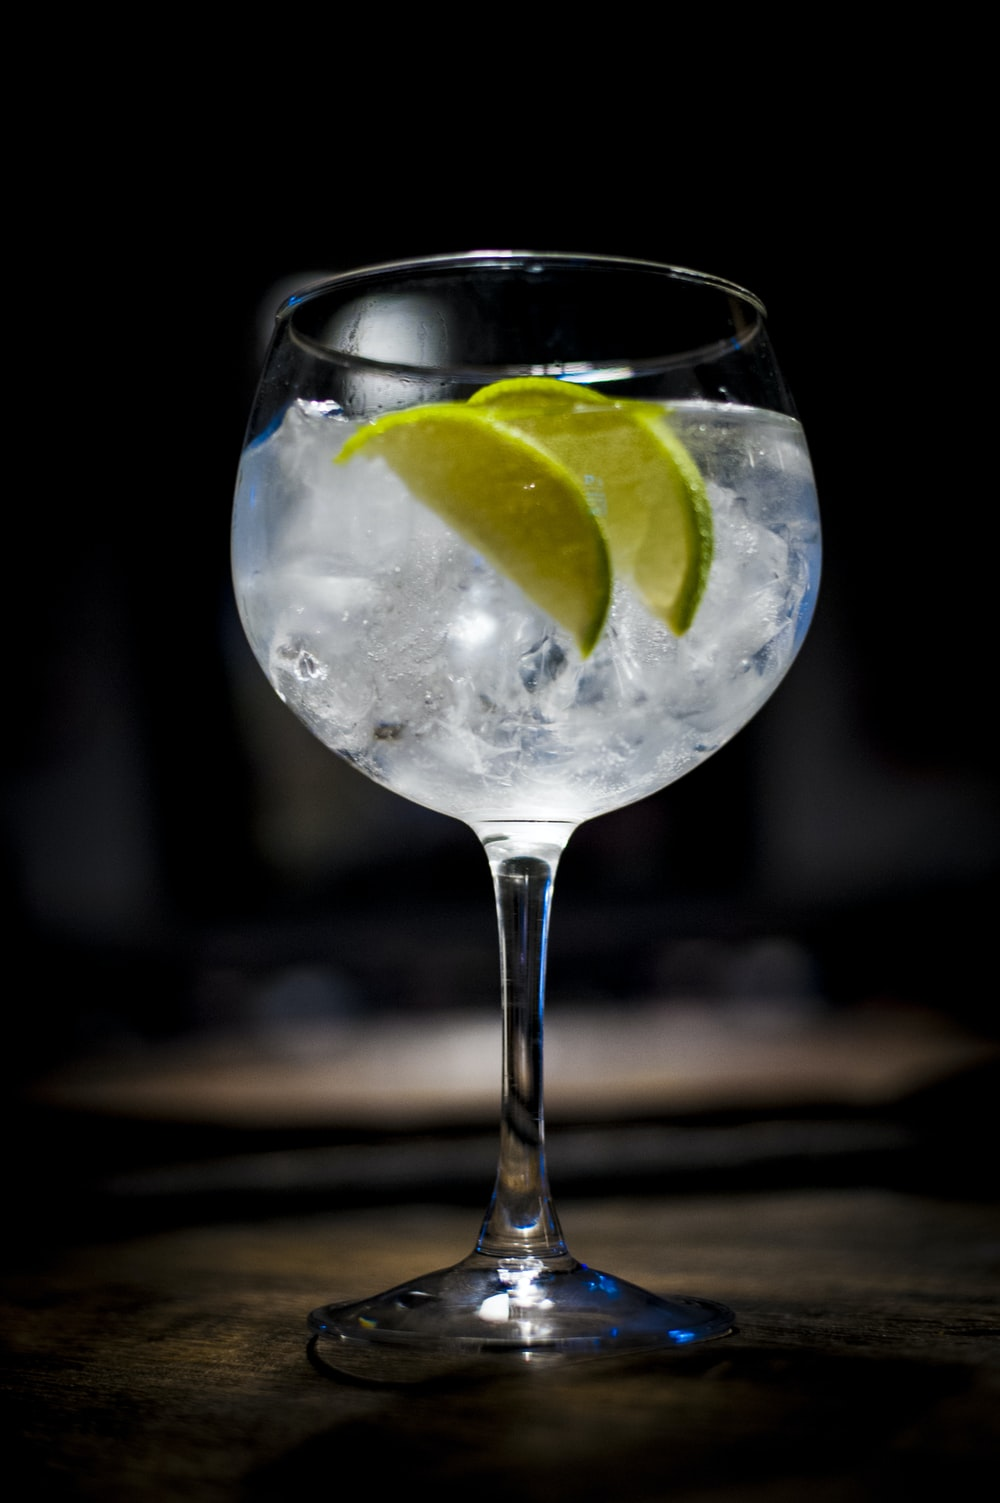 clear wine glass with lemon